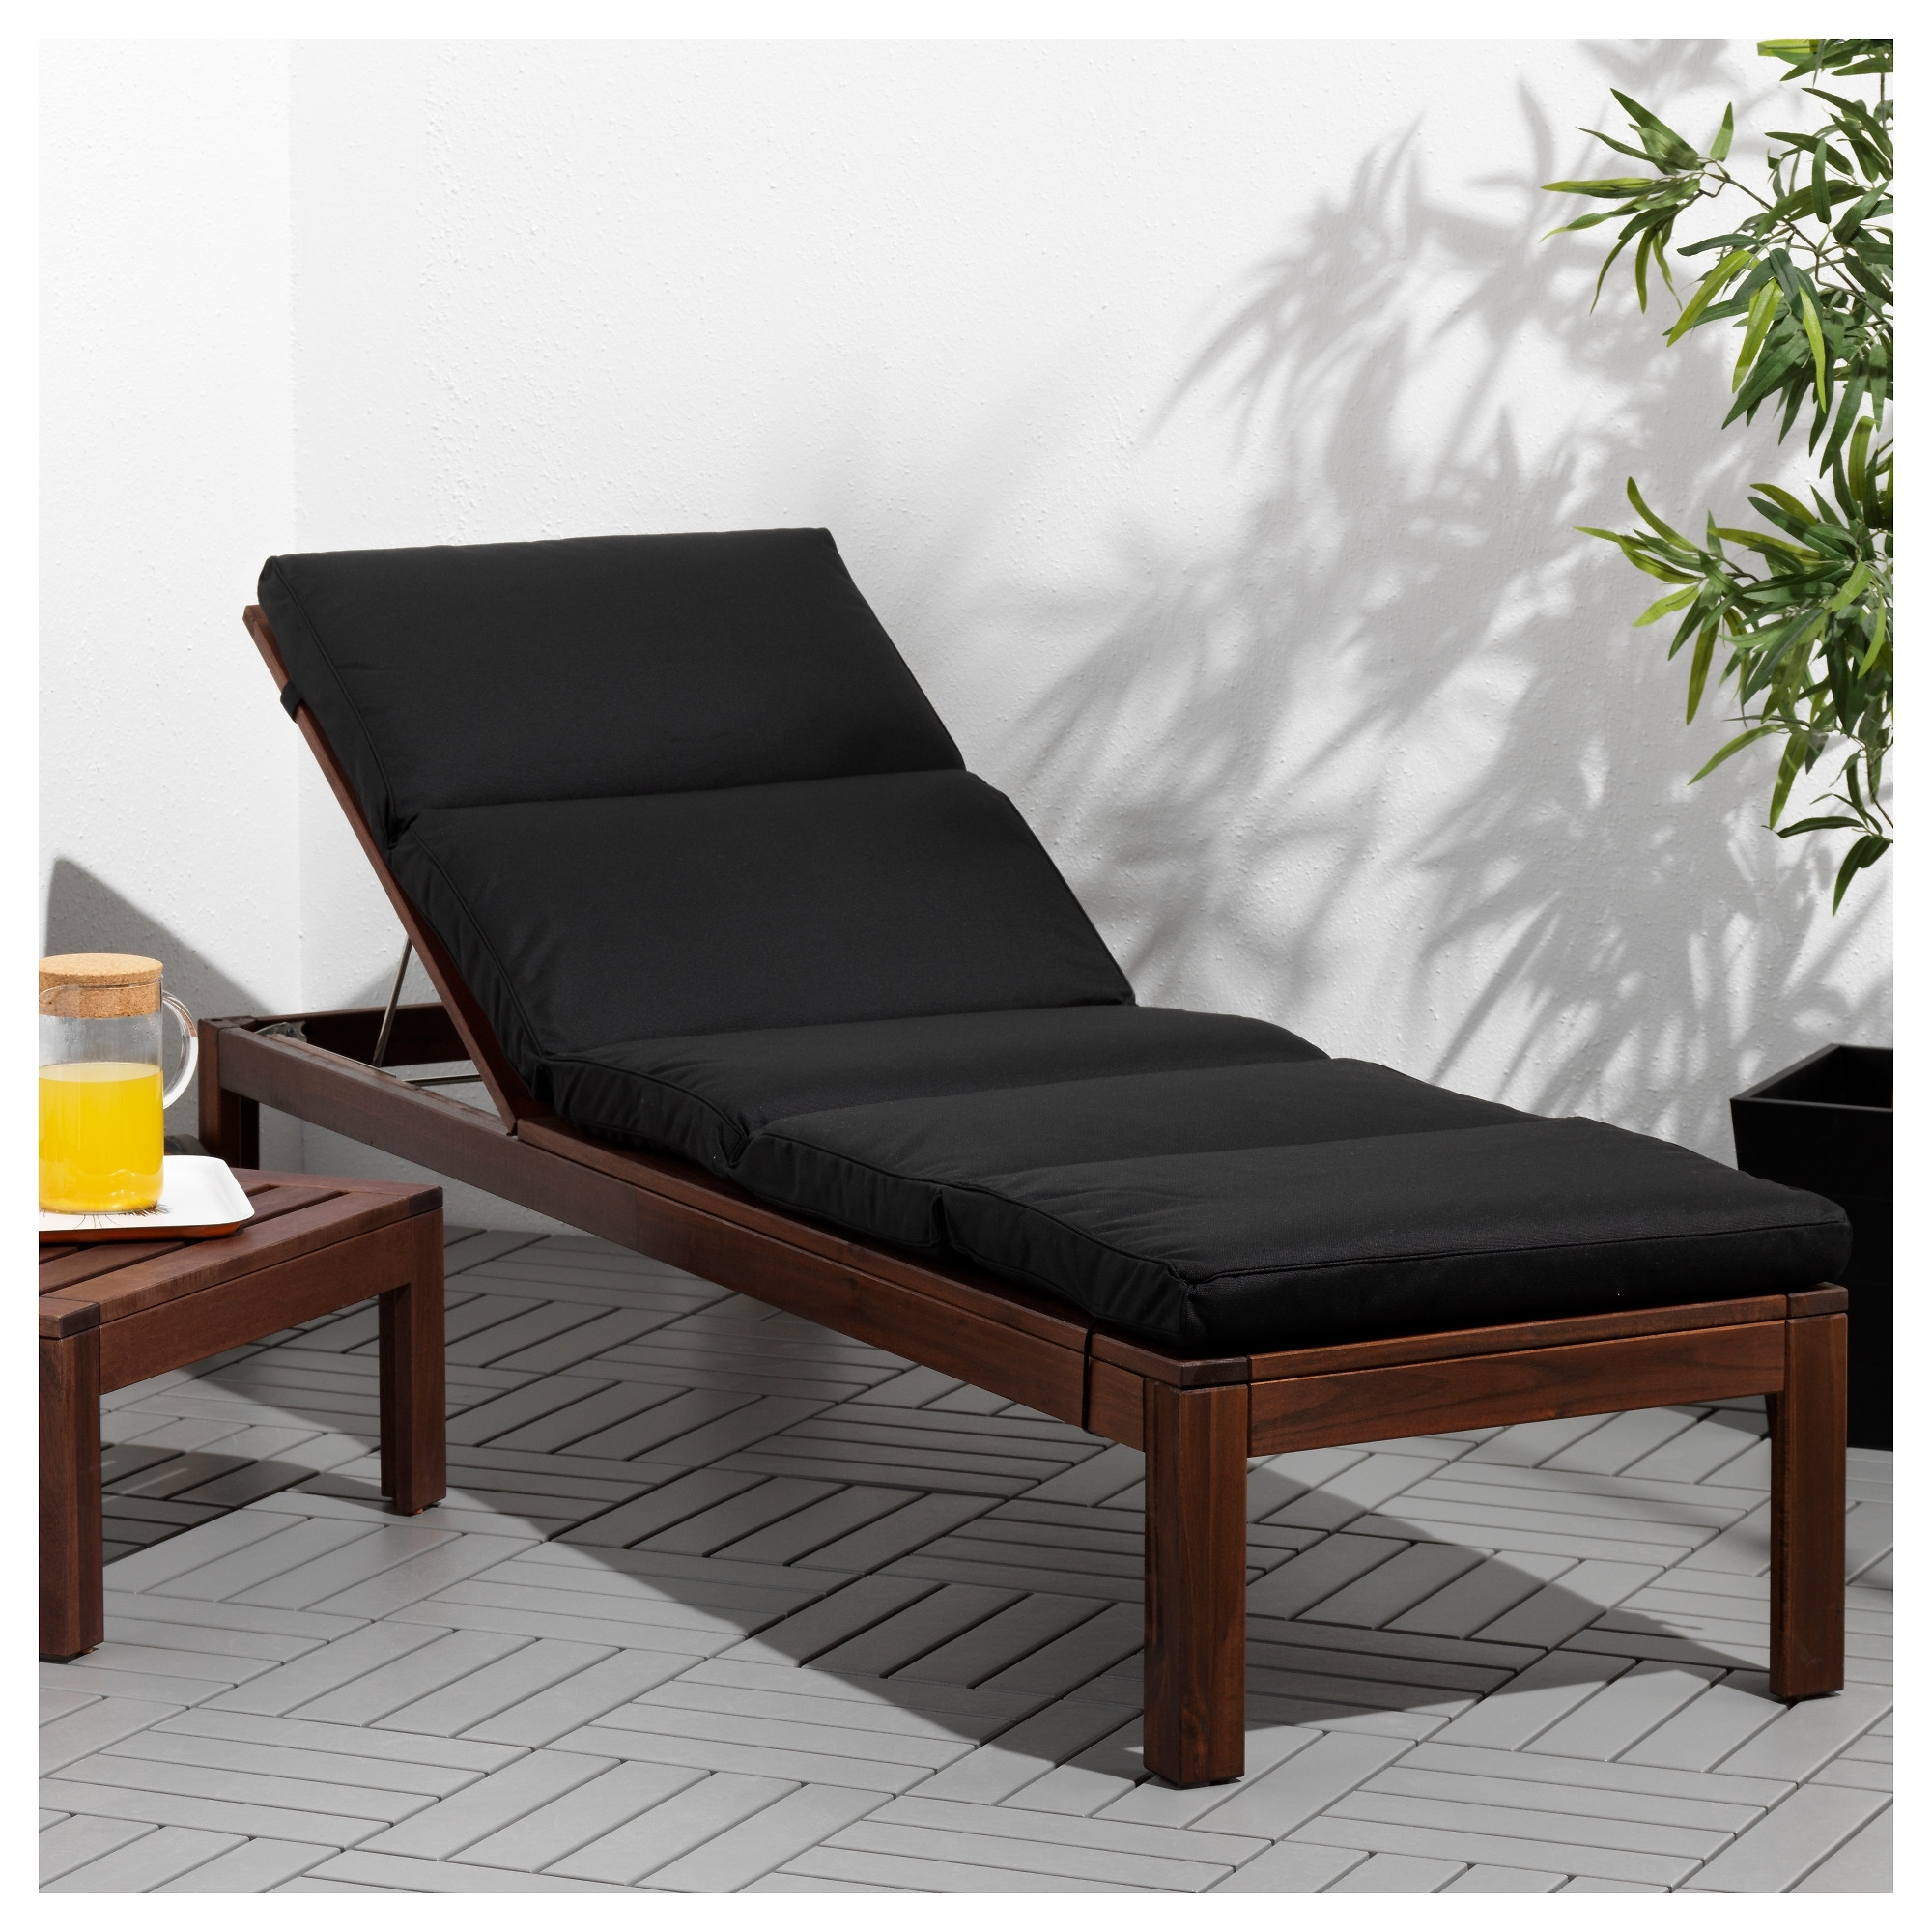 Outdoor Ikea Chaise Lounge Chairs With Fashionable Outdoor : Patio Furniture Lounge Lounge Chairs For Bedroom Plastic (View 10 of 15)